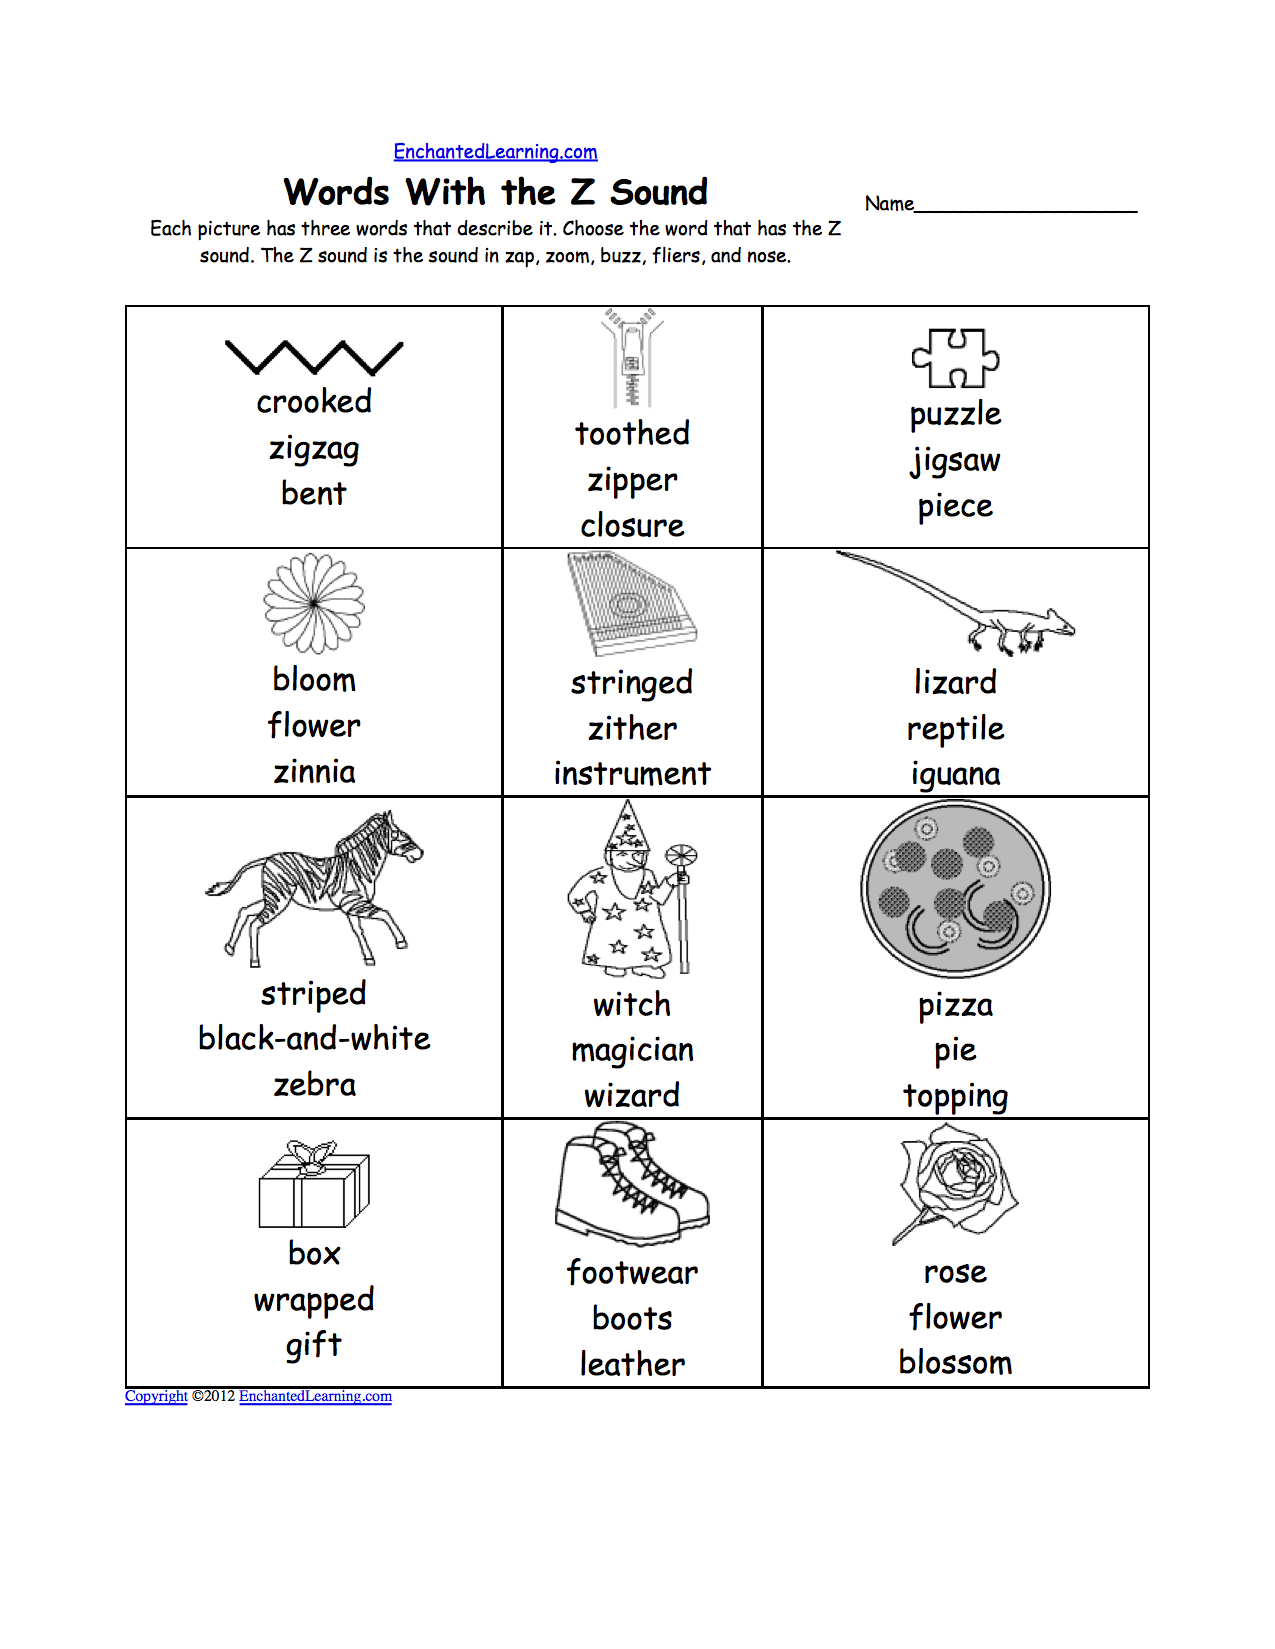 Aldiablosus  Stunning Phonics Worksheets Multiple Choice Worksheets To Print  With Fair Phonics Worksheets Multiple Choice Worksheets To Print  Enchantedlearningcom With Divine Acid Base Worksheet Middle School Also Third Grade Math Common Core Worksheets In Addition High Frequency Words Kindergarten Worksheets And Currency Worksheets As Well As Printable Earth Day Worksheets Additionally Rd Grade Sight Words Worksheets From Enchantedlearningcom With Aldiablosus  Fair Phonics Worksheets Multiple Choice Worksheets To Print  With Divine Phonics Worksheets Multiple Choice Worksheets To Print  Enchantedlearningcom And Stunning Acid Base Worksheet Middle School Also Third Grade Math Common Core Worksheets In Addition High Frequency Words Kindergarten Worksheets From Enchantedlearningcom